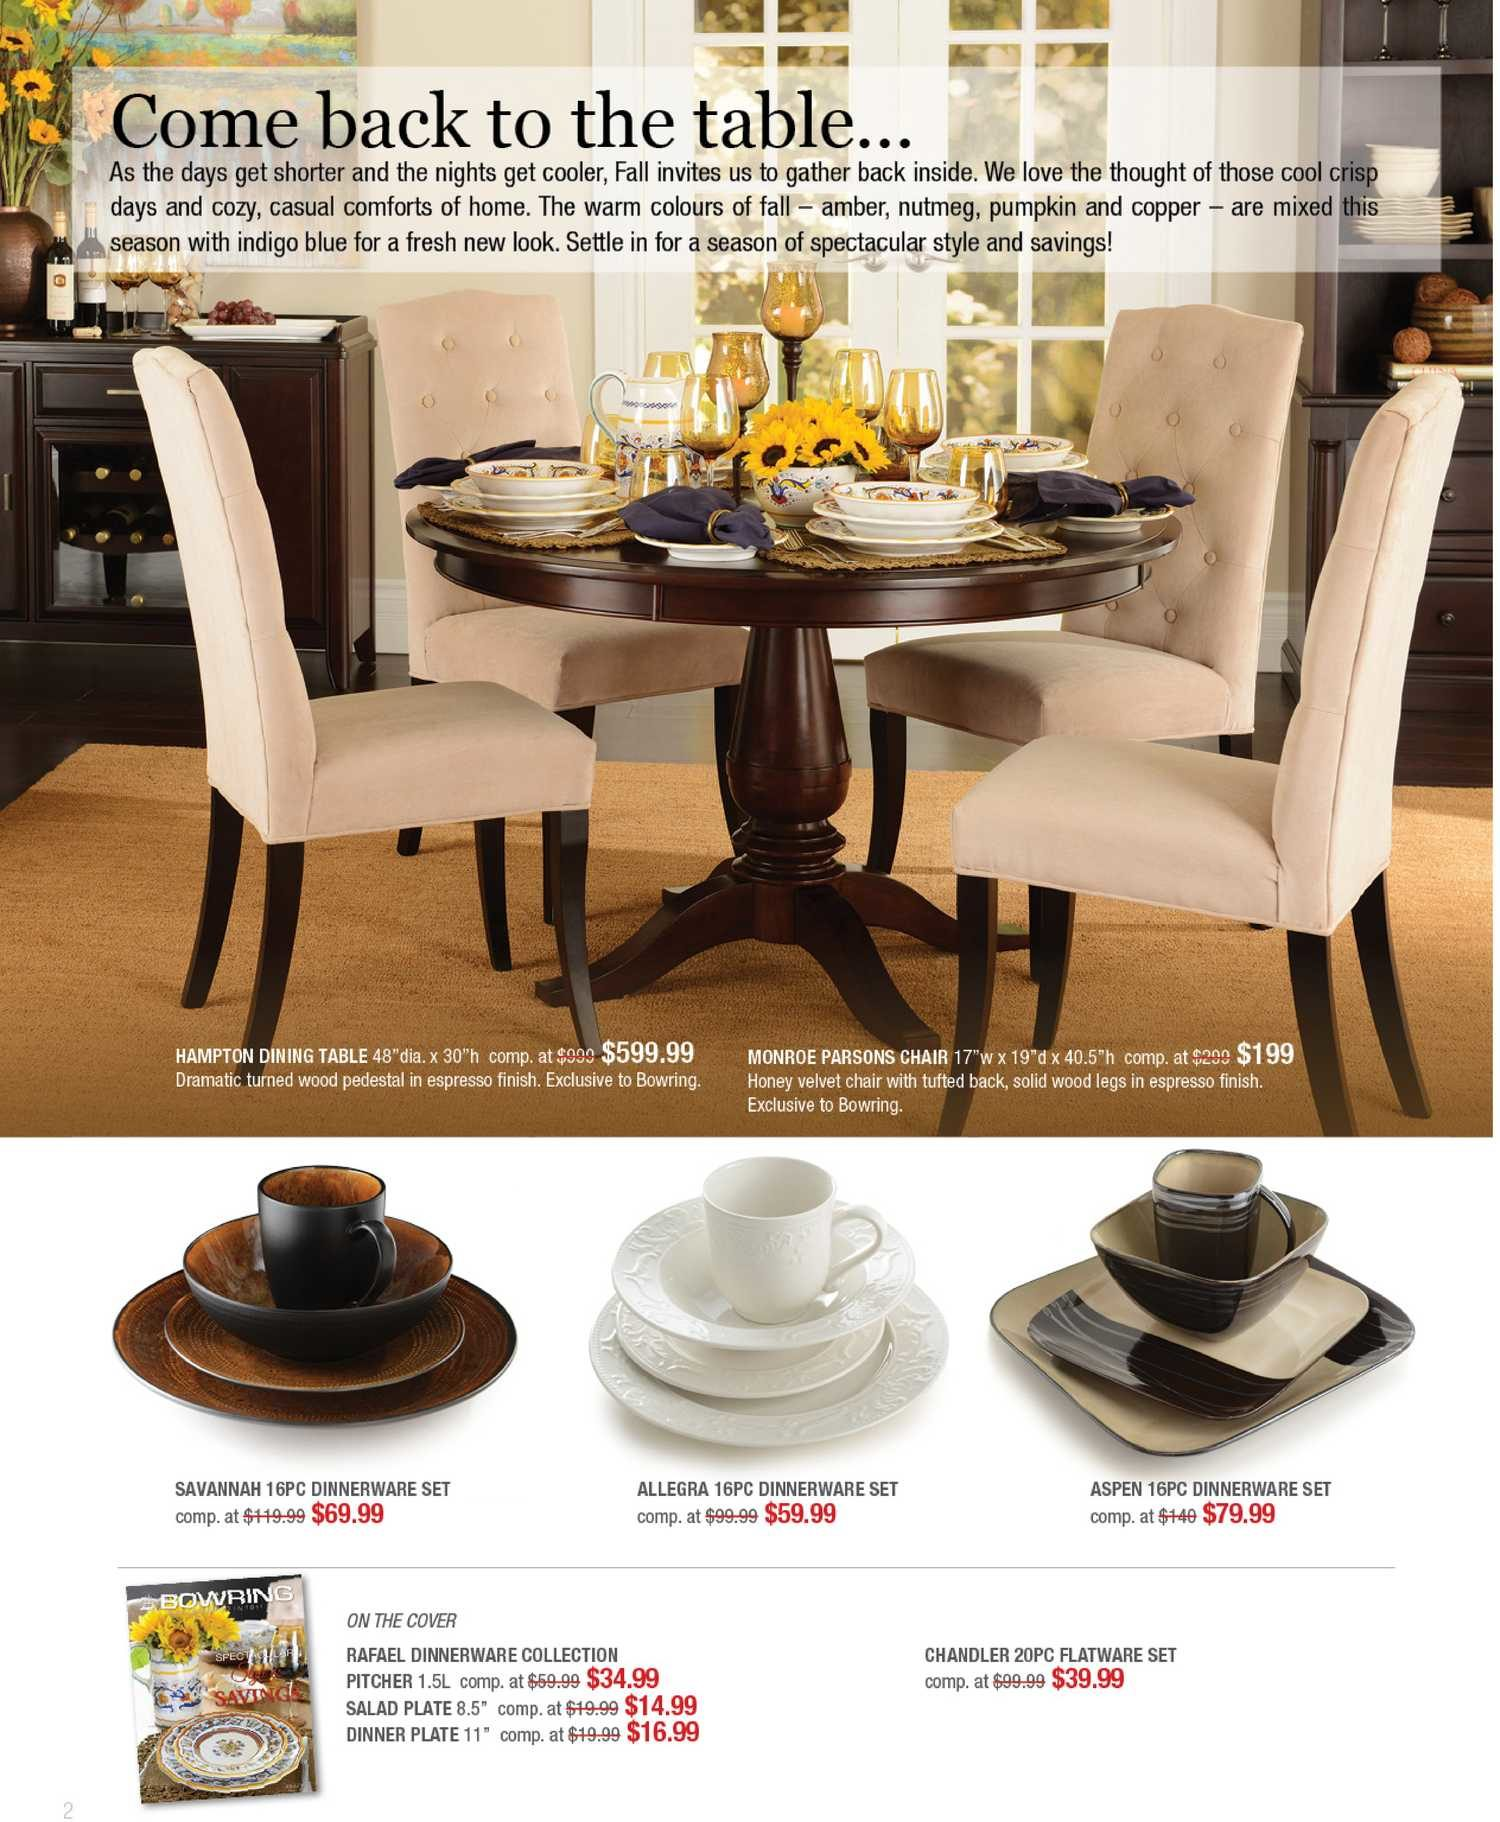 Bowring Weekly Flyer - Fall Catelogue 2013 - Style \u0026 Savings - Oct 7 \u2013 31 - RedFlagDeals.com & Bowring Weekly Flyer - Fall Catelogue 2013 - Style \u0026 Savings - Oct ...